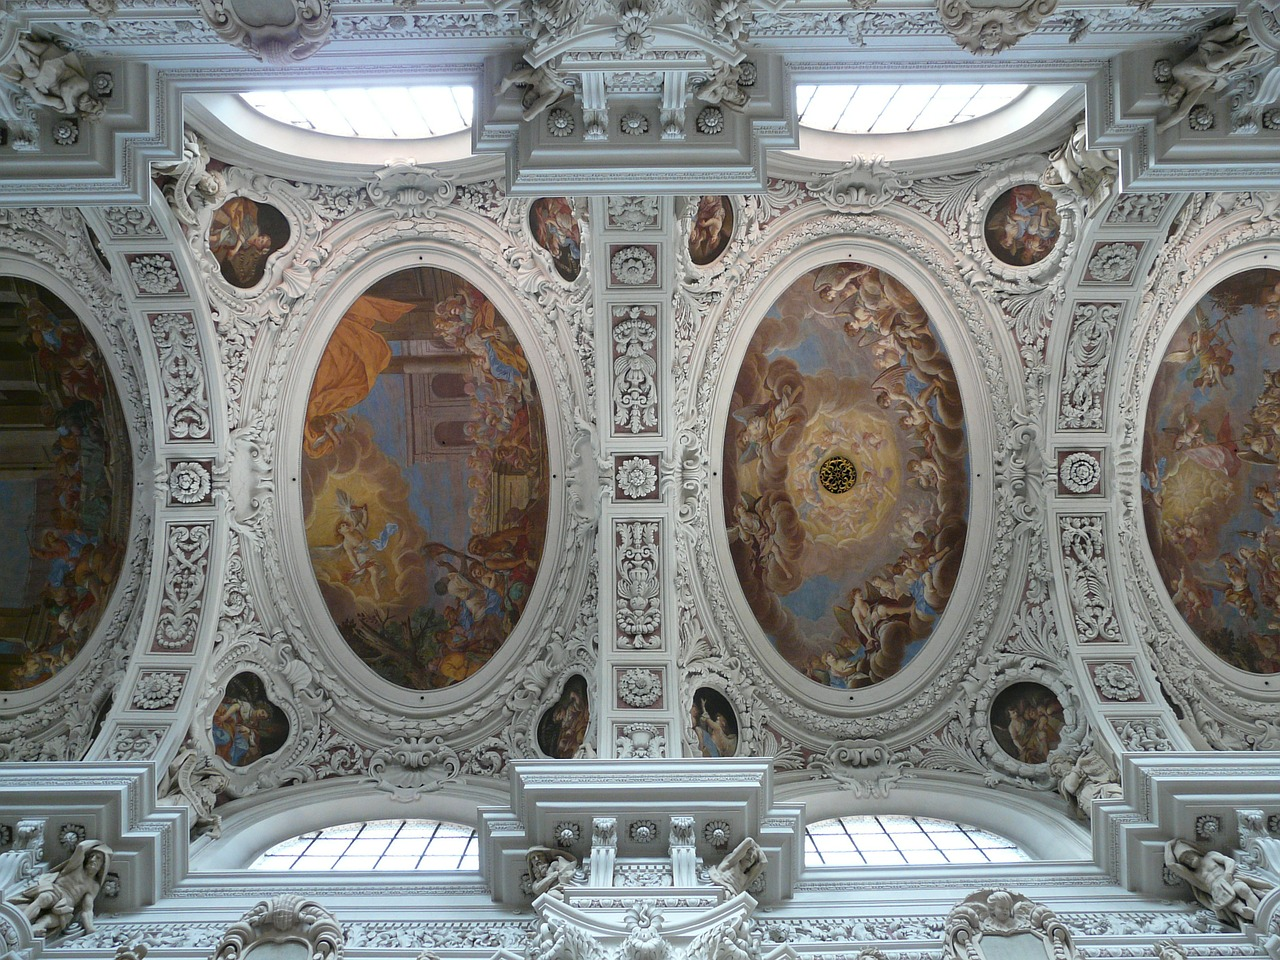 stucco ceiling,blanket,frescoes,ceiling paintings,ceiling frescoes,dom,st stephan,passau,baroque,bishop church,church,episcopal see,passauer stephansdom,st stephan's cathedral,dome painting,free pictures, free photos, free images, royalty free, free illustrations, public domain